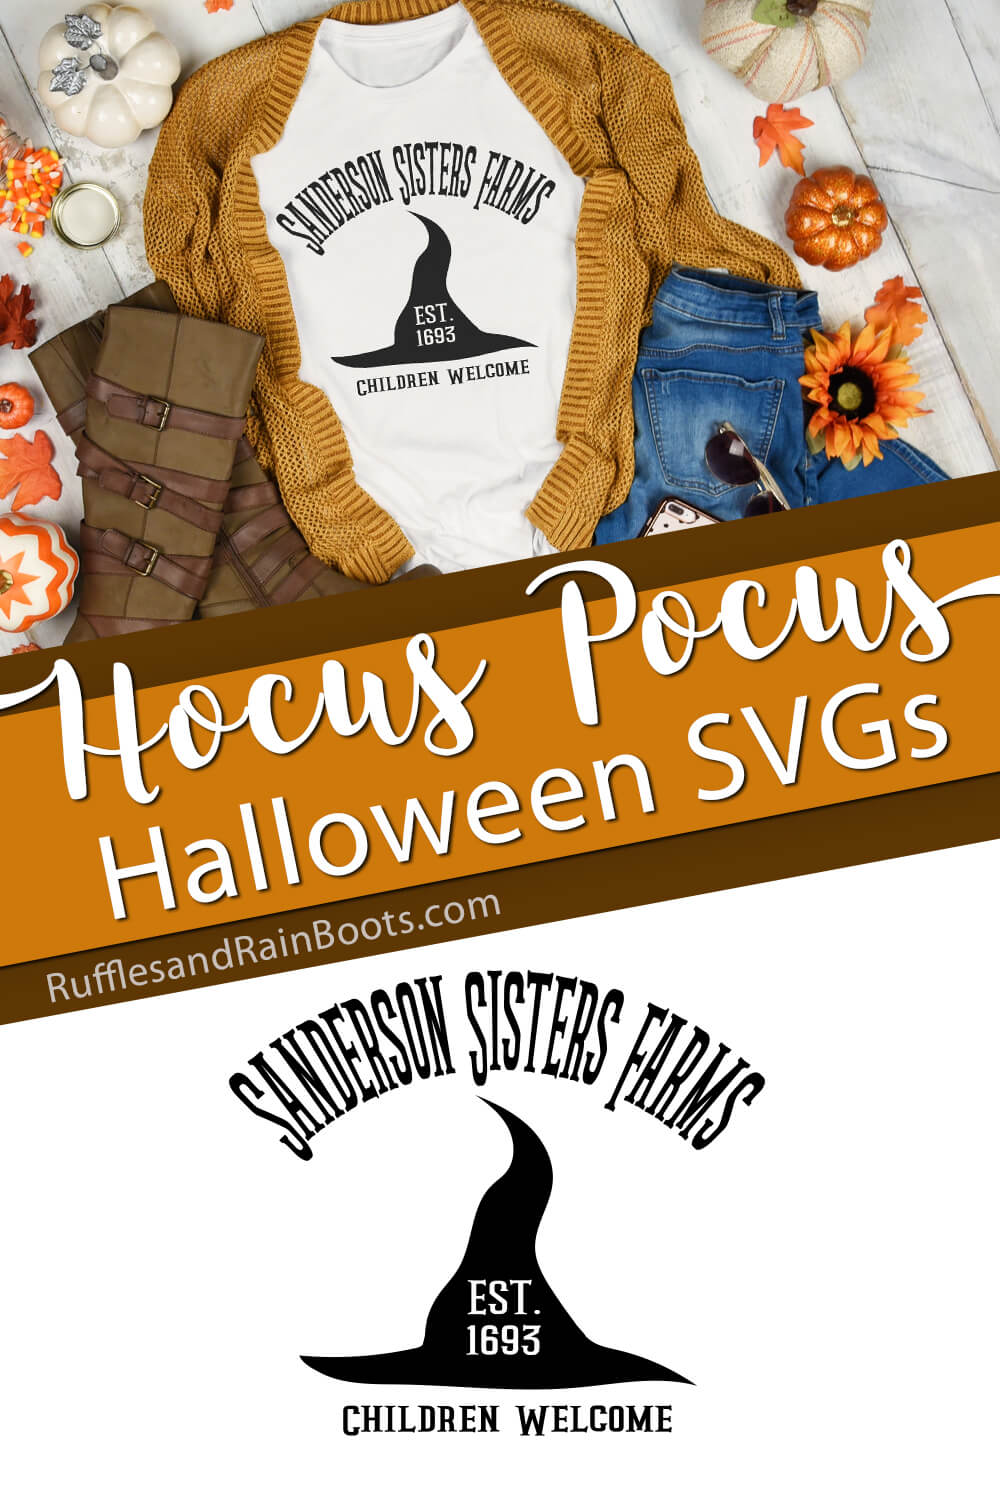 photo collage of witch hat with sanderson sisters farms svg with text which reads hocus pocus halloween svgs